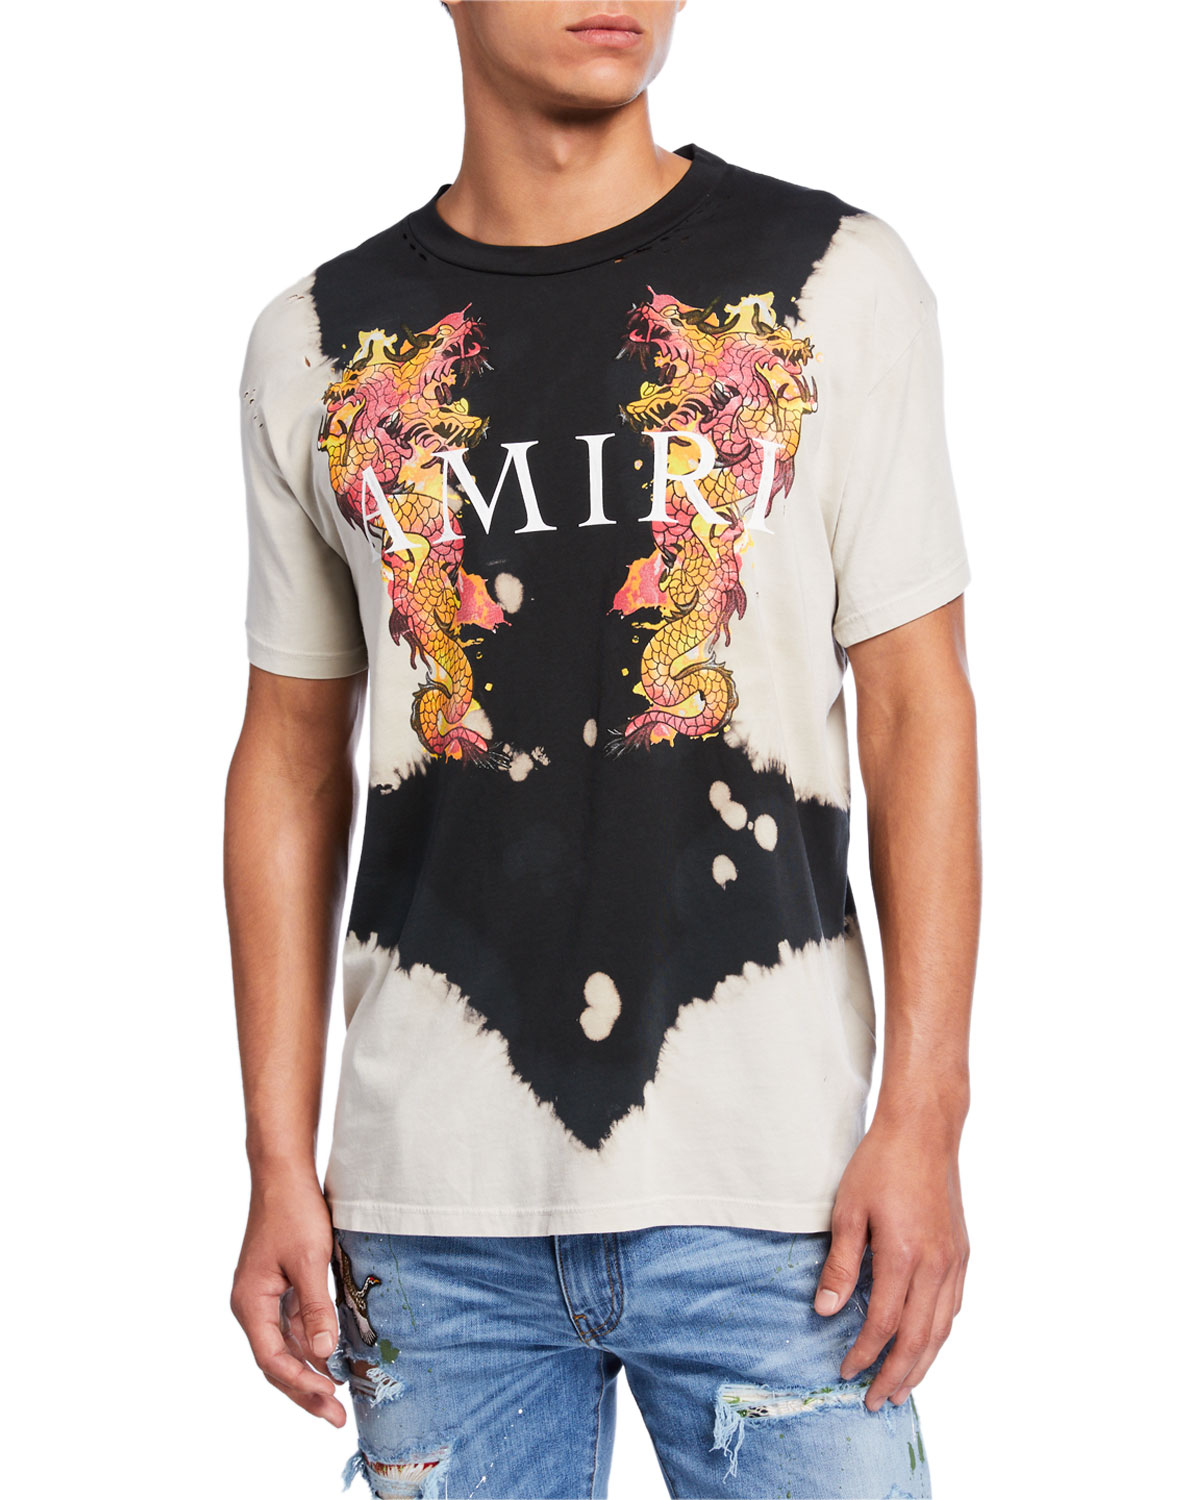 Amiri T-shirts MEN'S WATERCOLOR DRAGON T-SHIRT